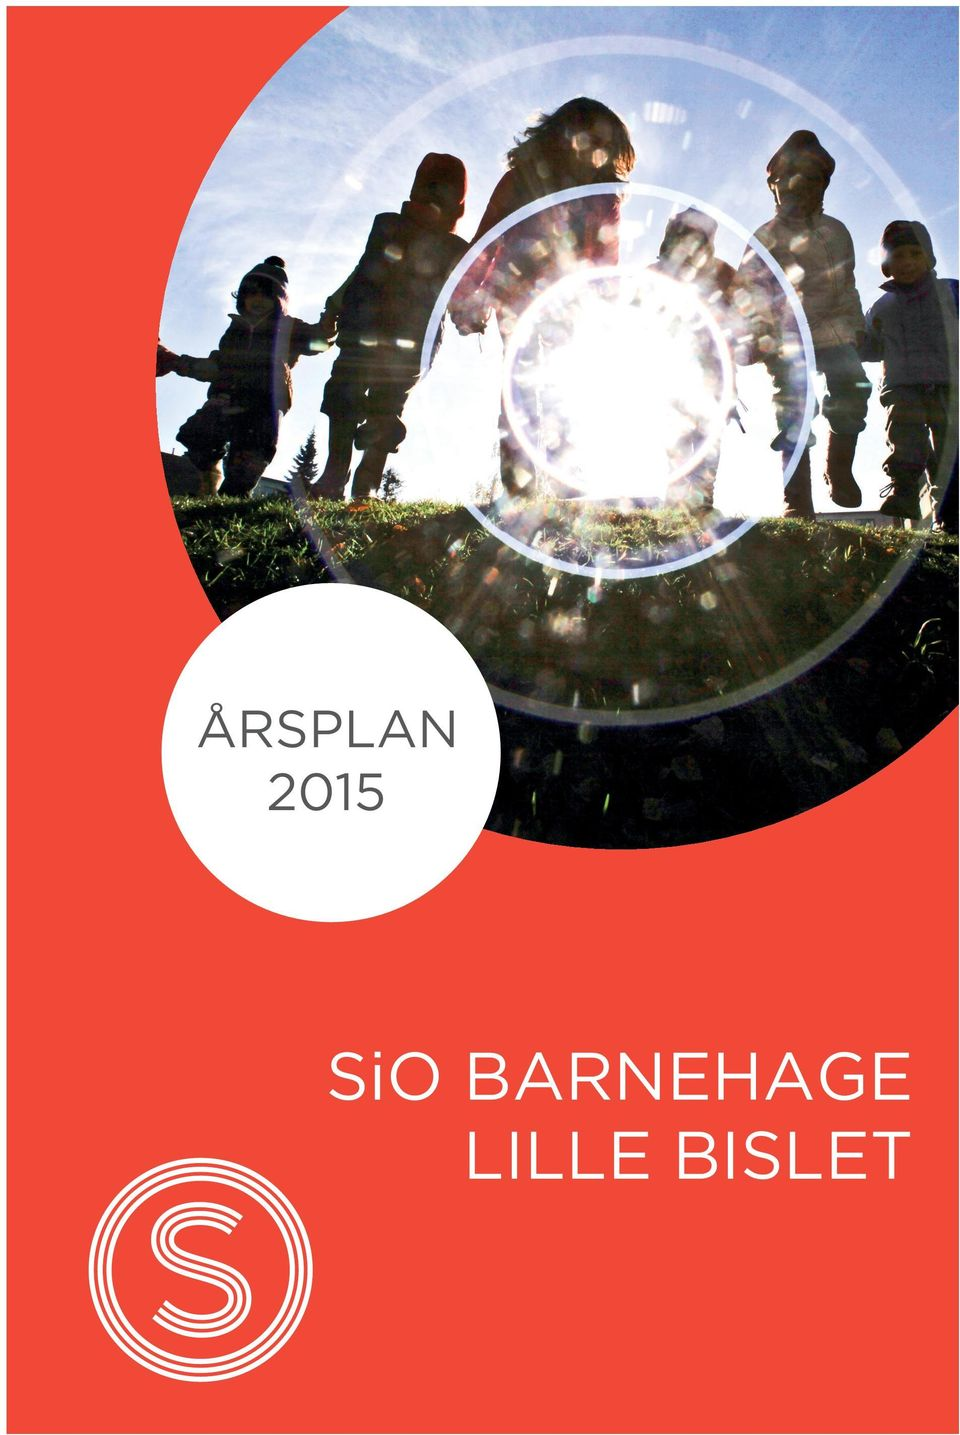 SiO BARNEHAGE LILLE BISLET